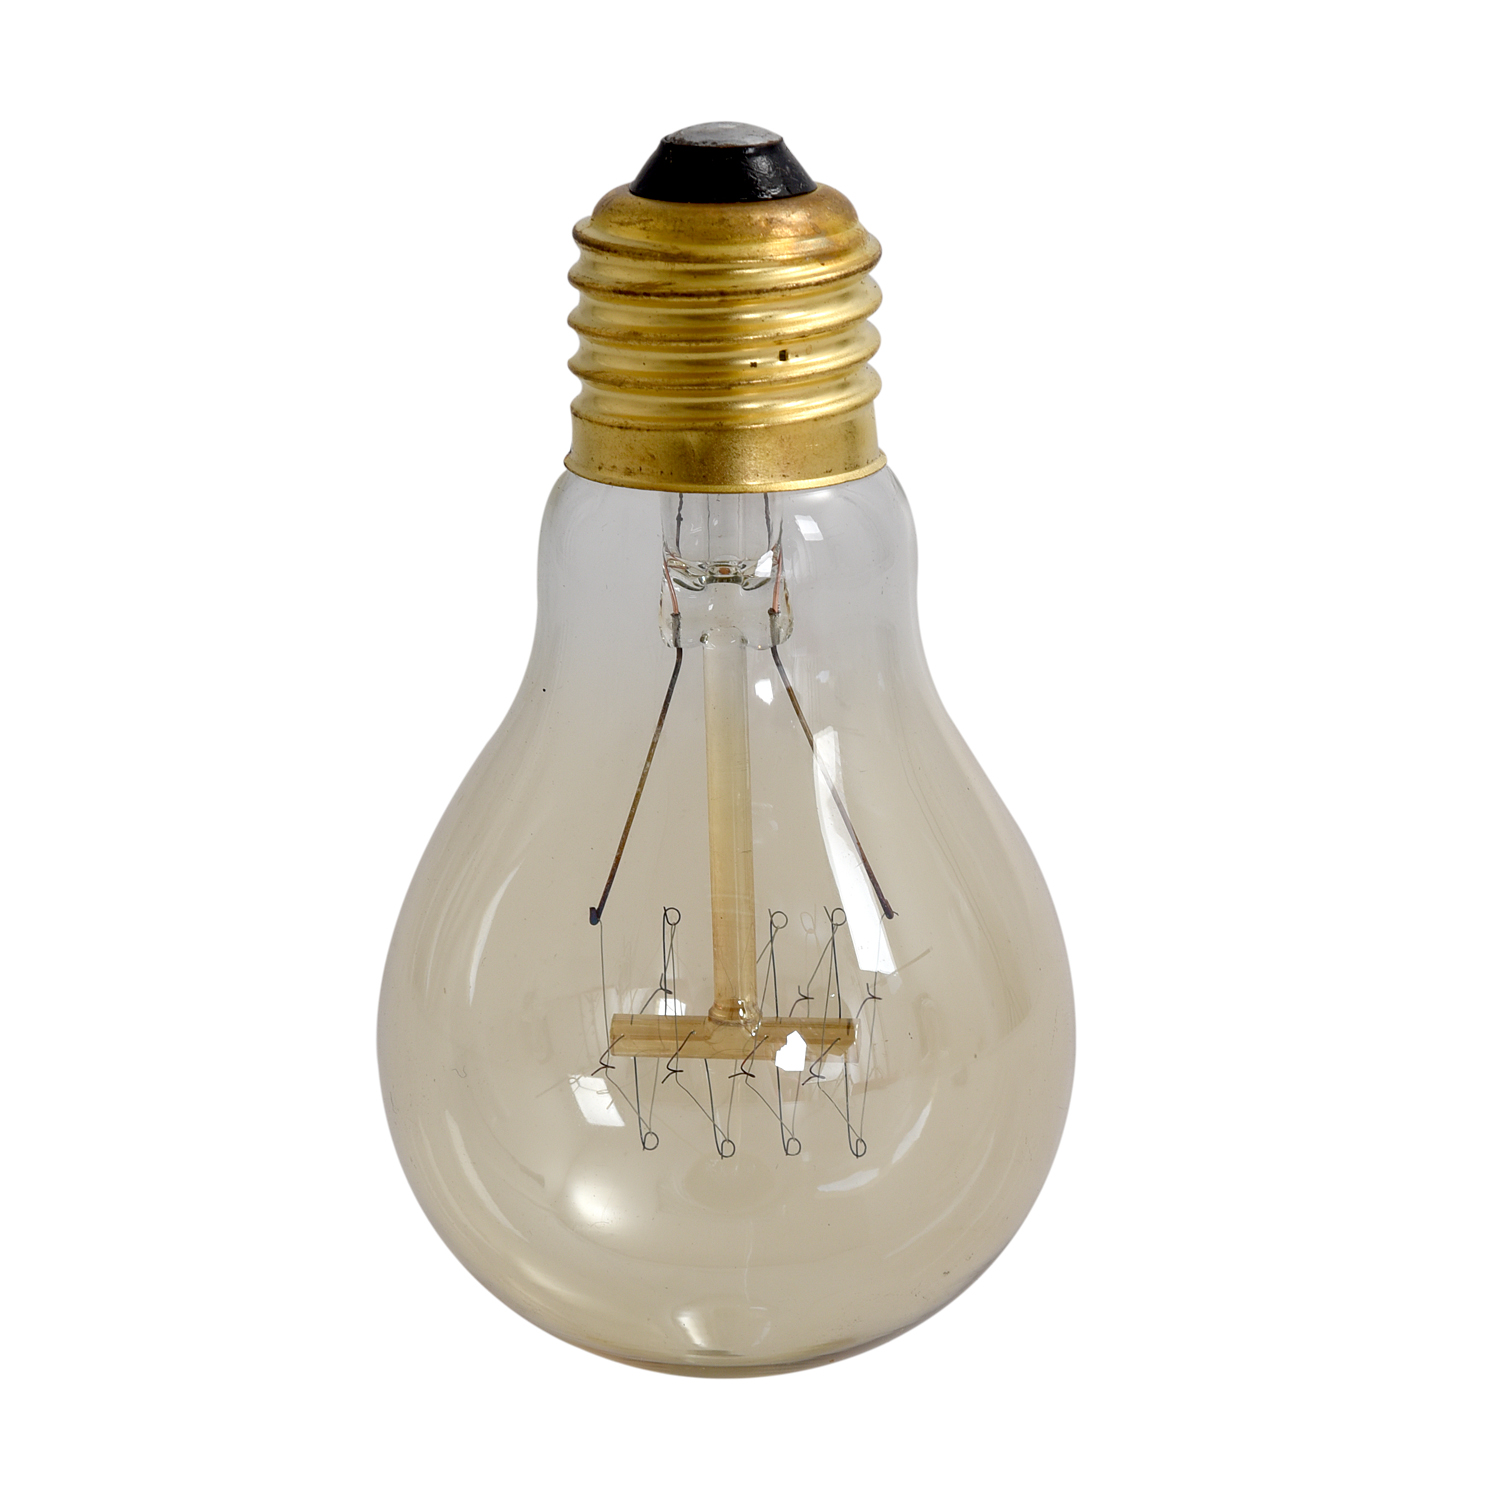 40w vintage retro filament edison tungsten light bulb antique style lamp led cp ebay. Black Bedroom Furniture Sets. Home Design Ideas